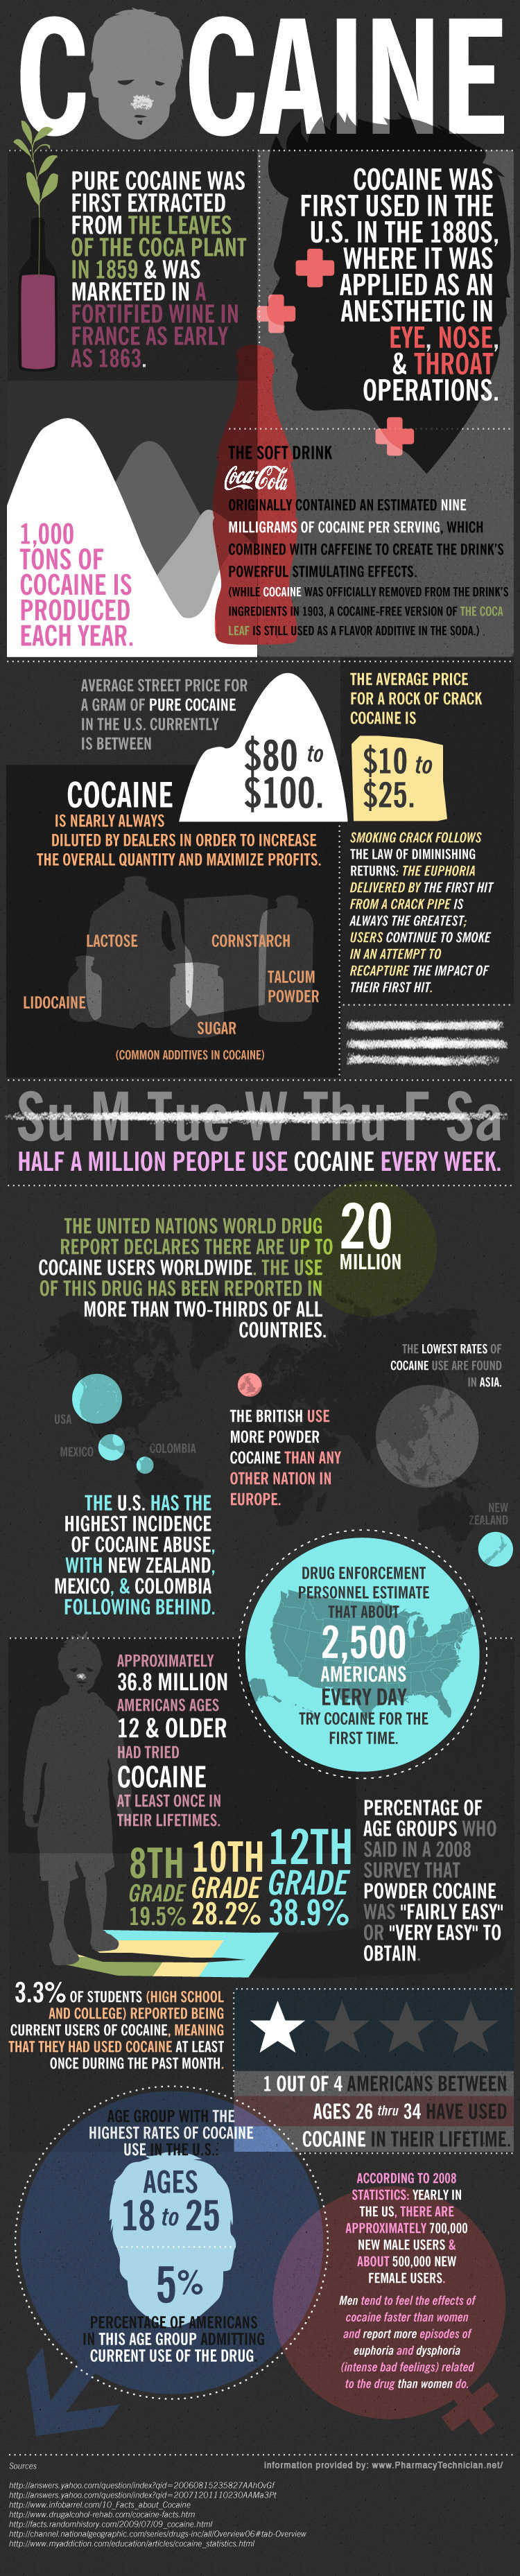 Facts about Cocaine by cocaine snorting infographic designing Douchebags